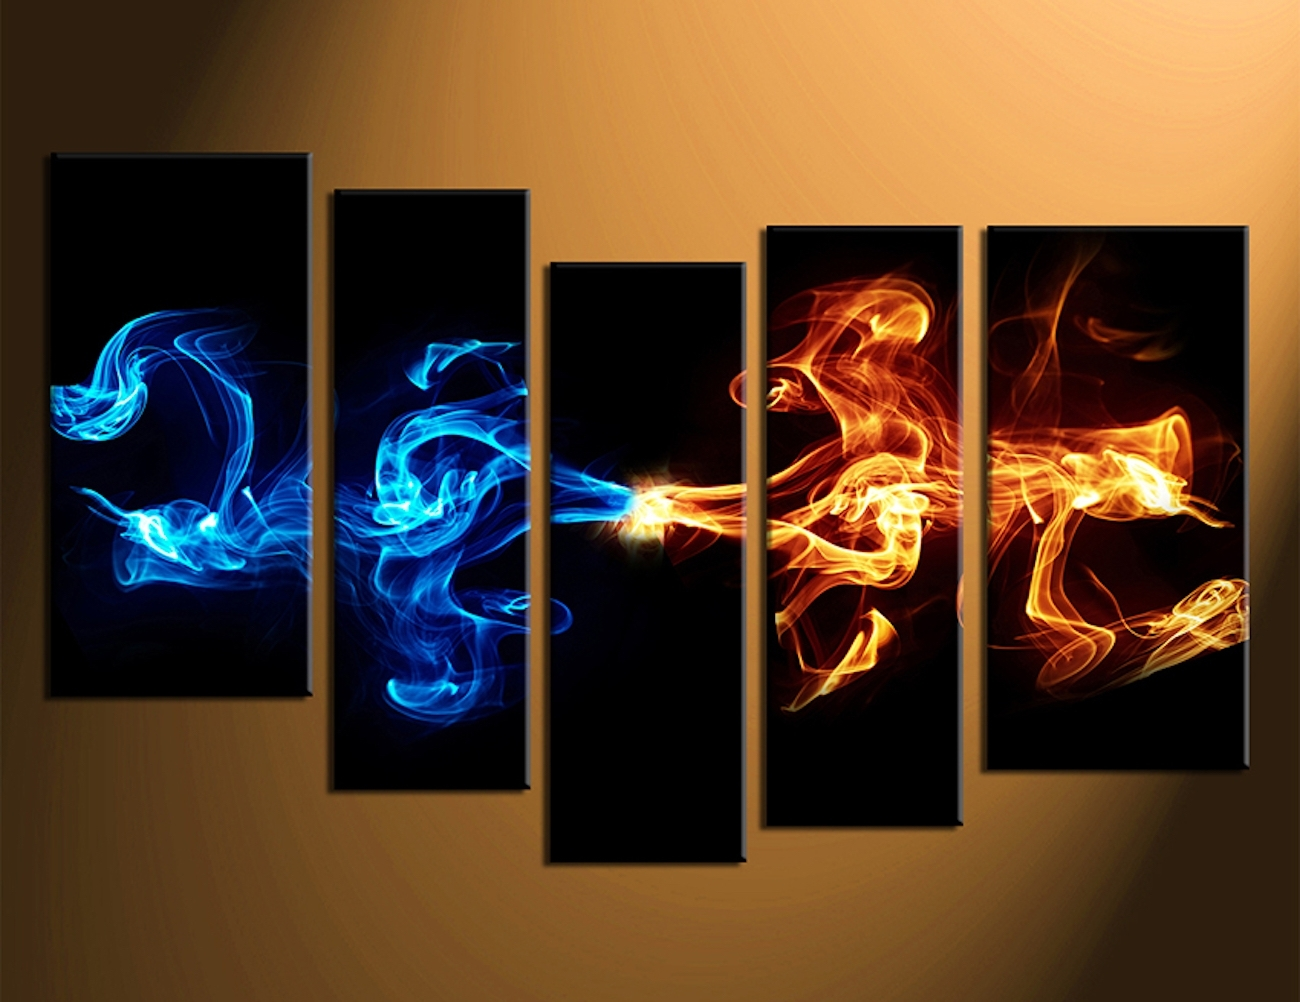 Abstract 5 Piece Smoke Canvas Wall Art » Gadget Flow Intended For Newest Wall Art Canvas (View 7 of 15)